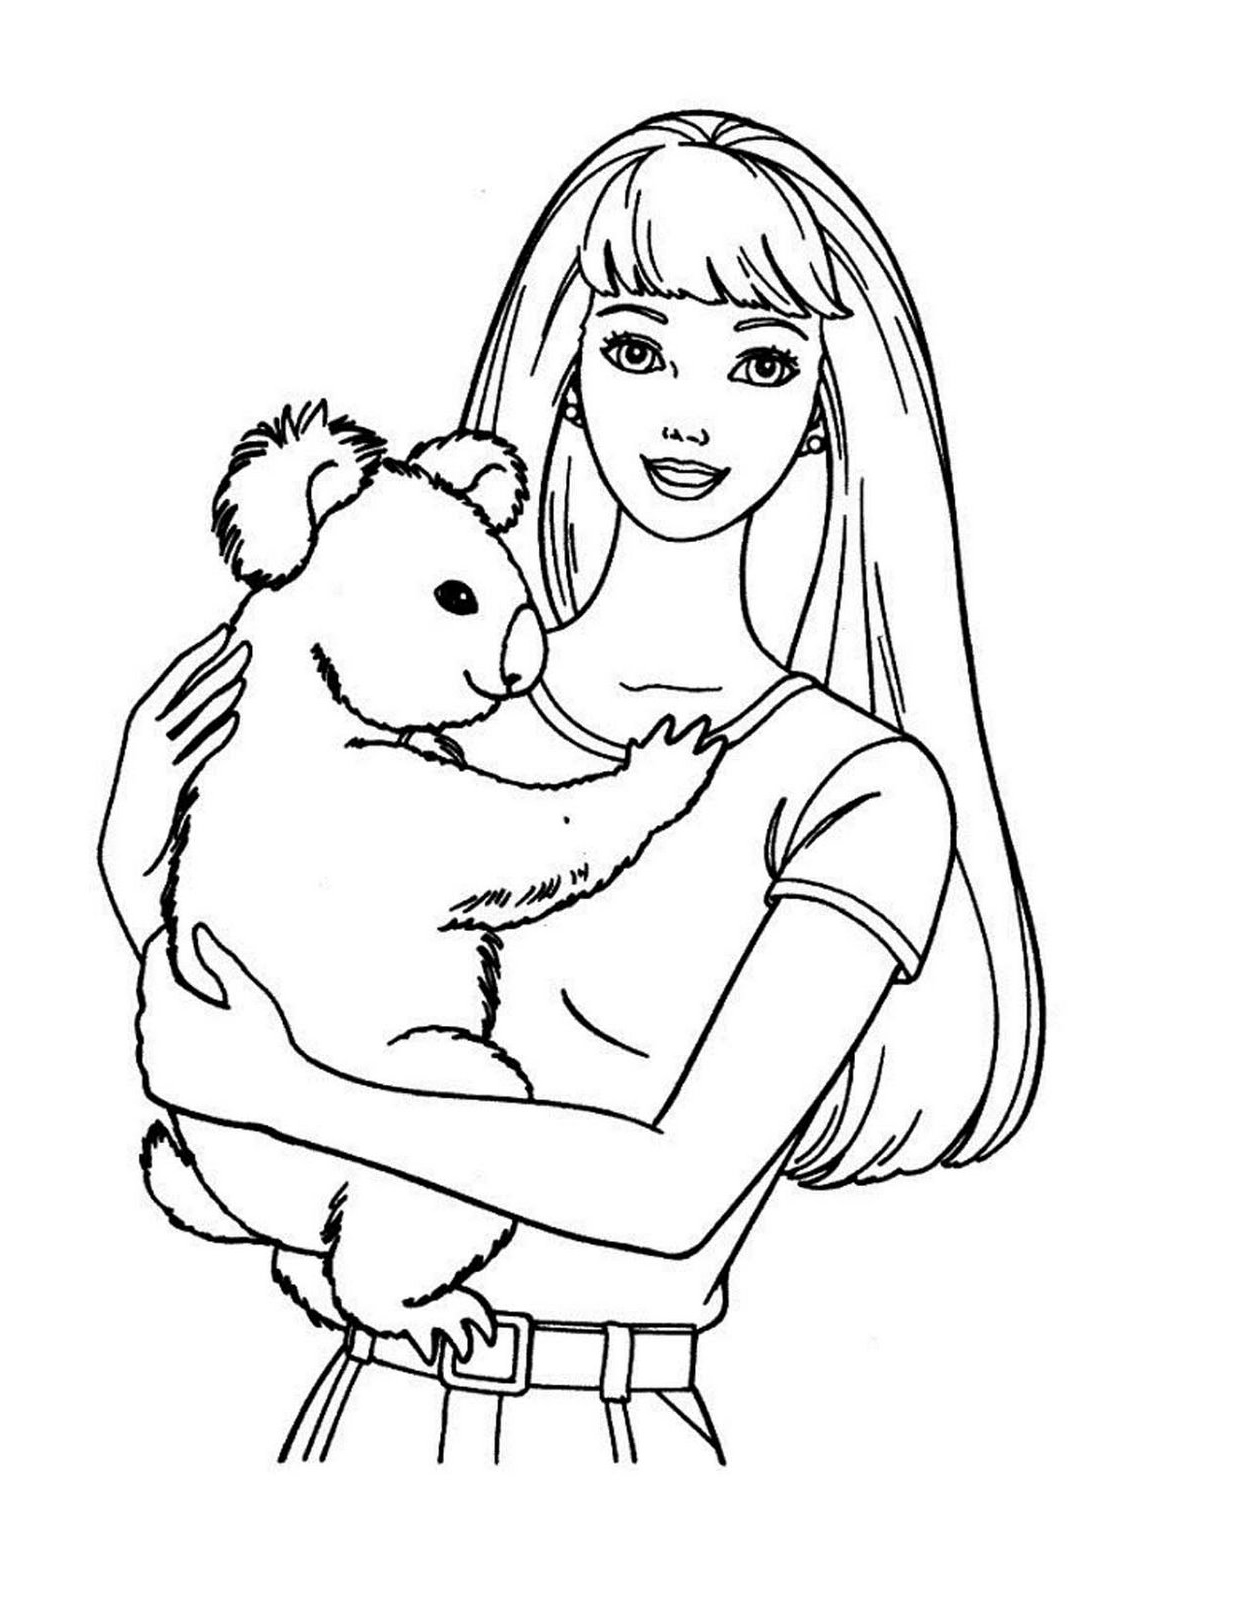 1236x1600 Barbie Coloring Pages Games Free Online Modest Printable